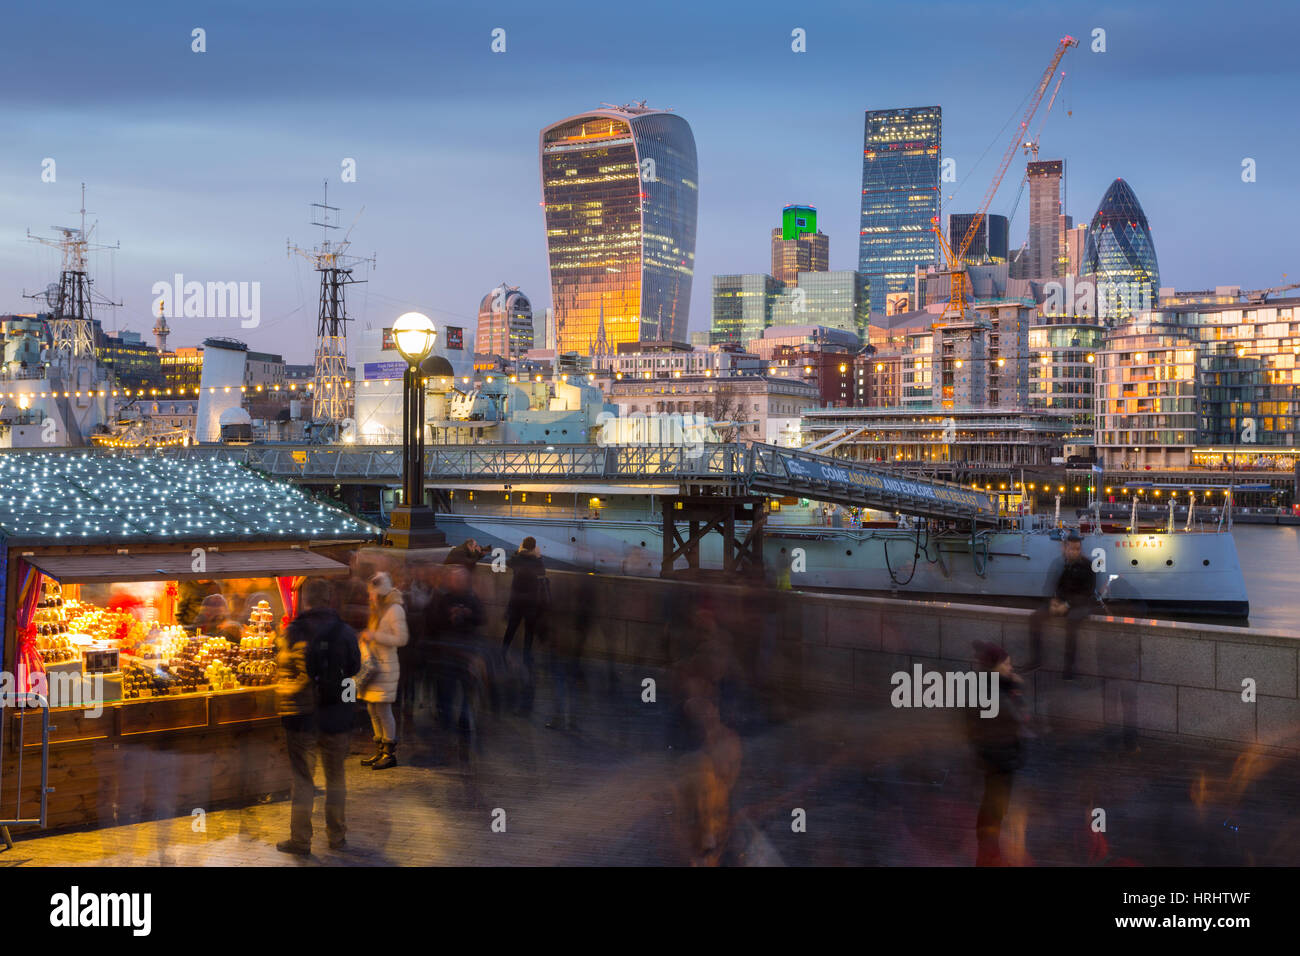 Christmas Market, The Scoop and The City of London skyline, South Bank, London, England, United Kingdom - Stock Image